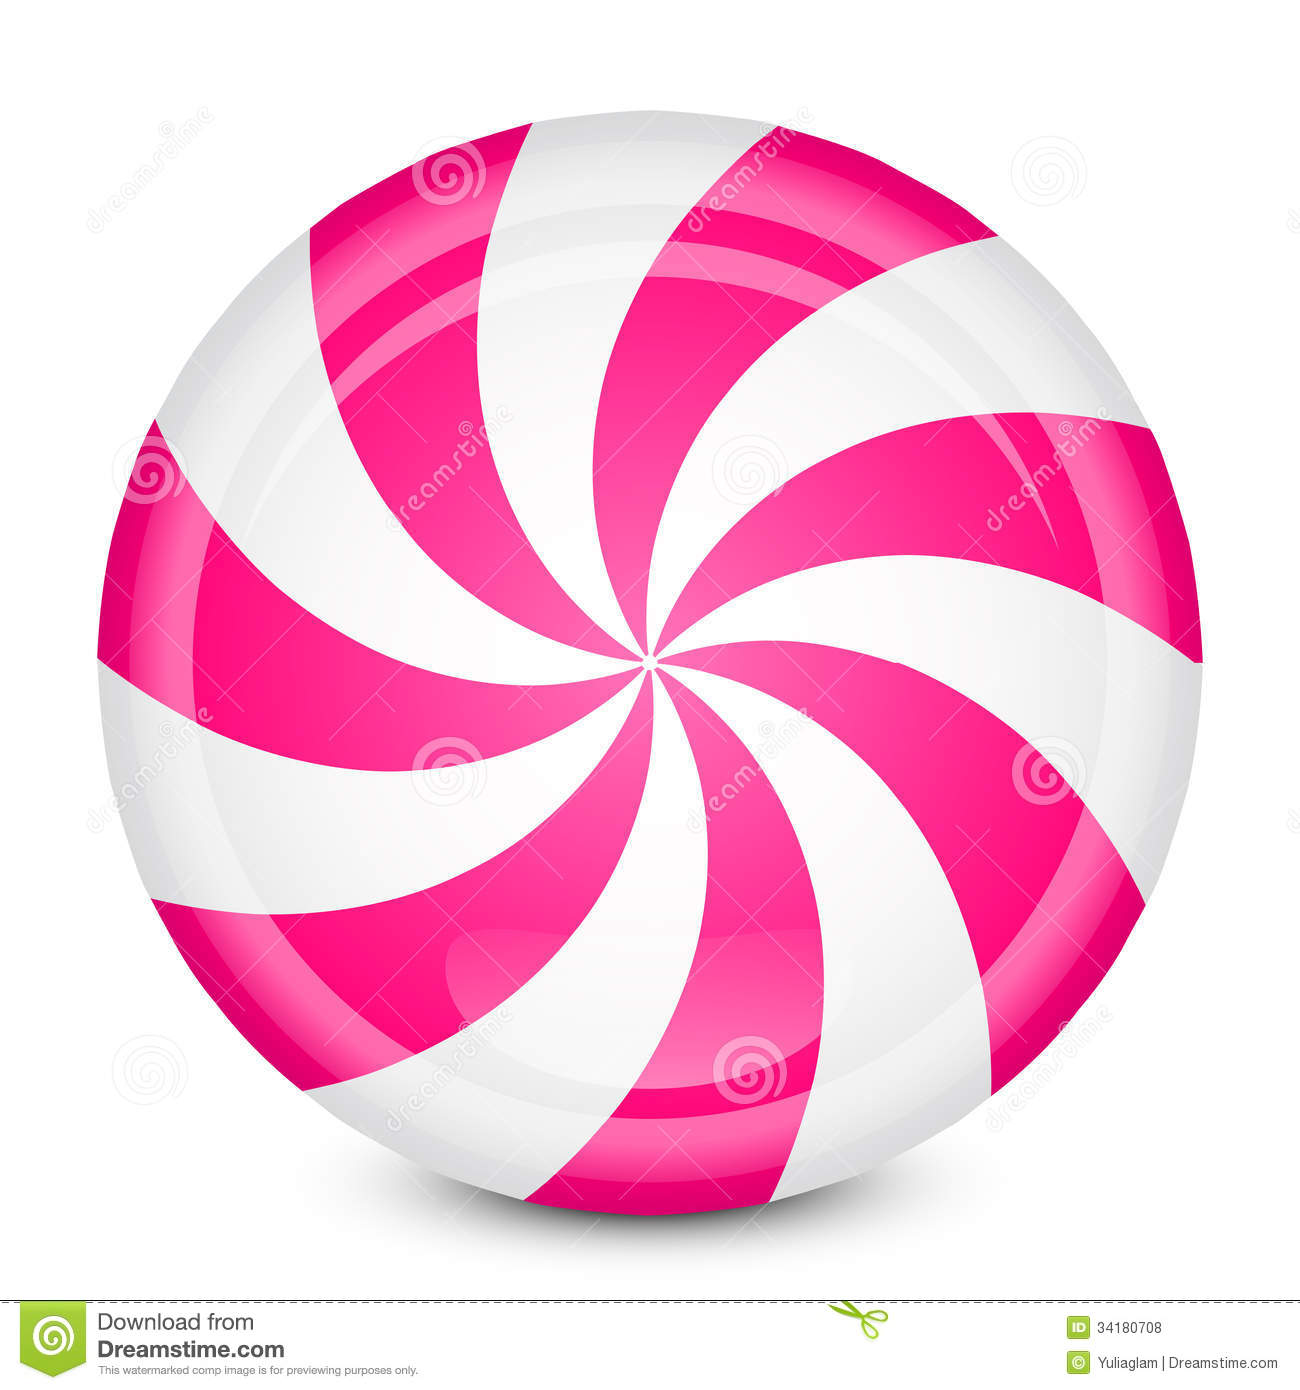 Peppermint clipart real candy. Pink